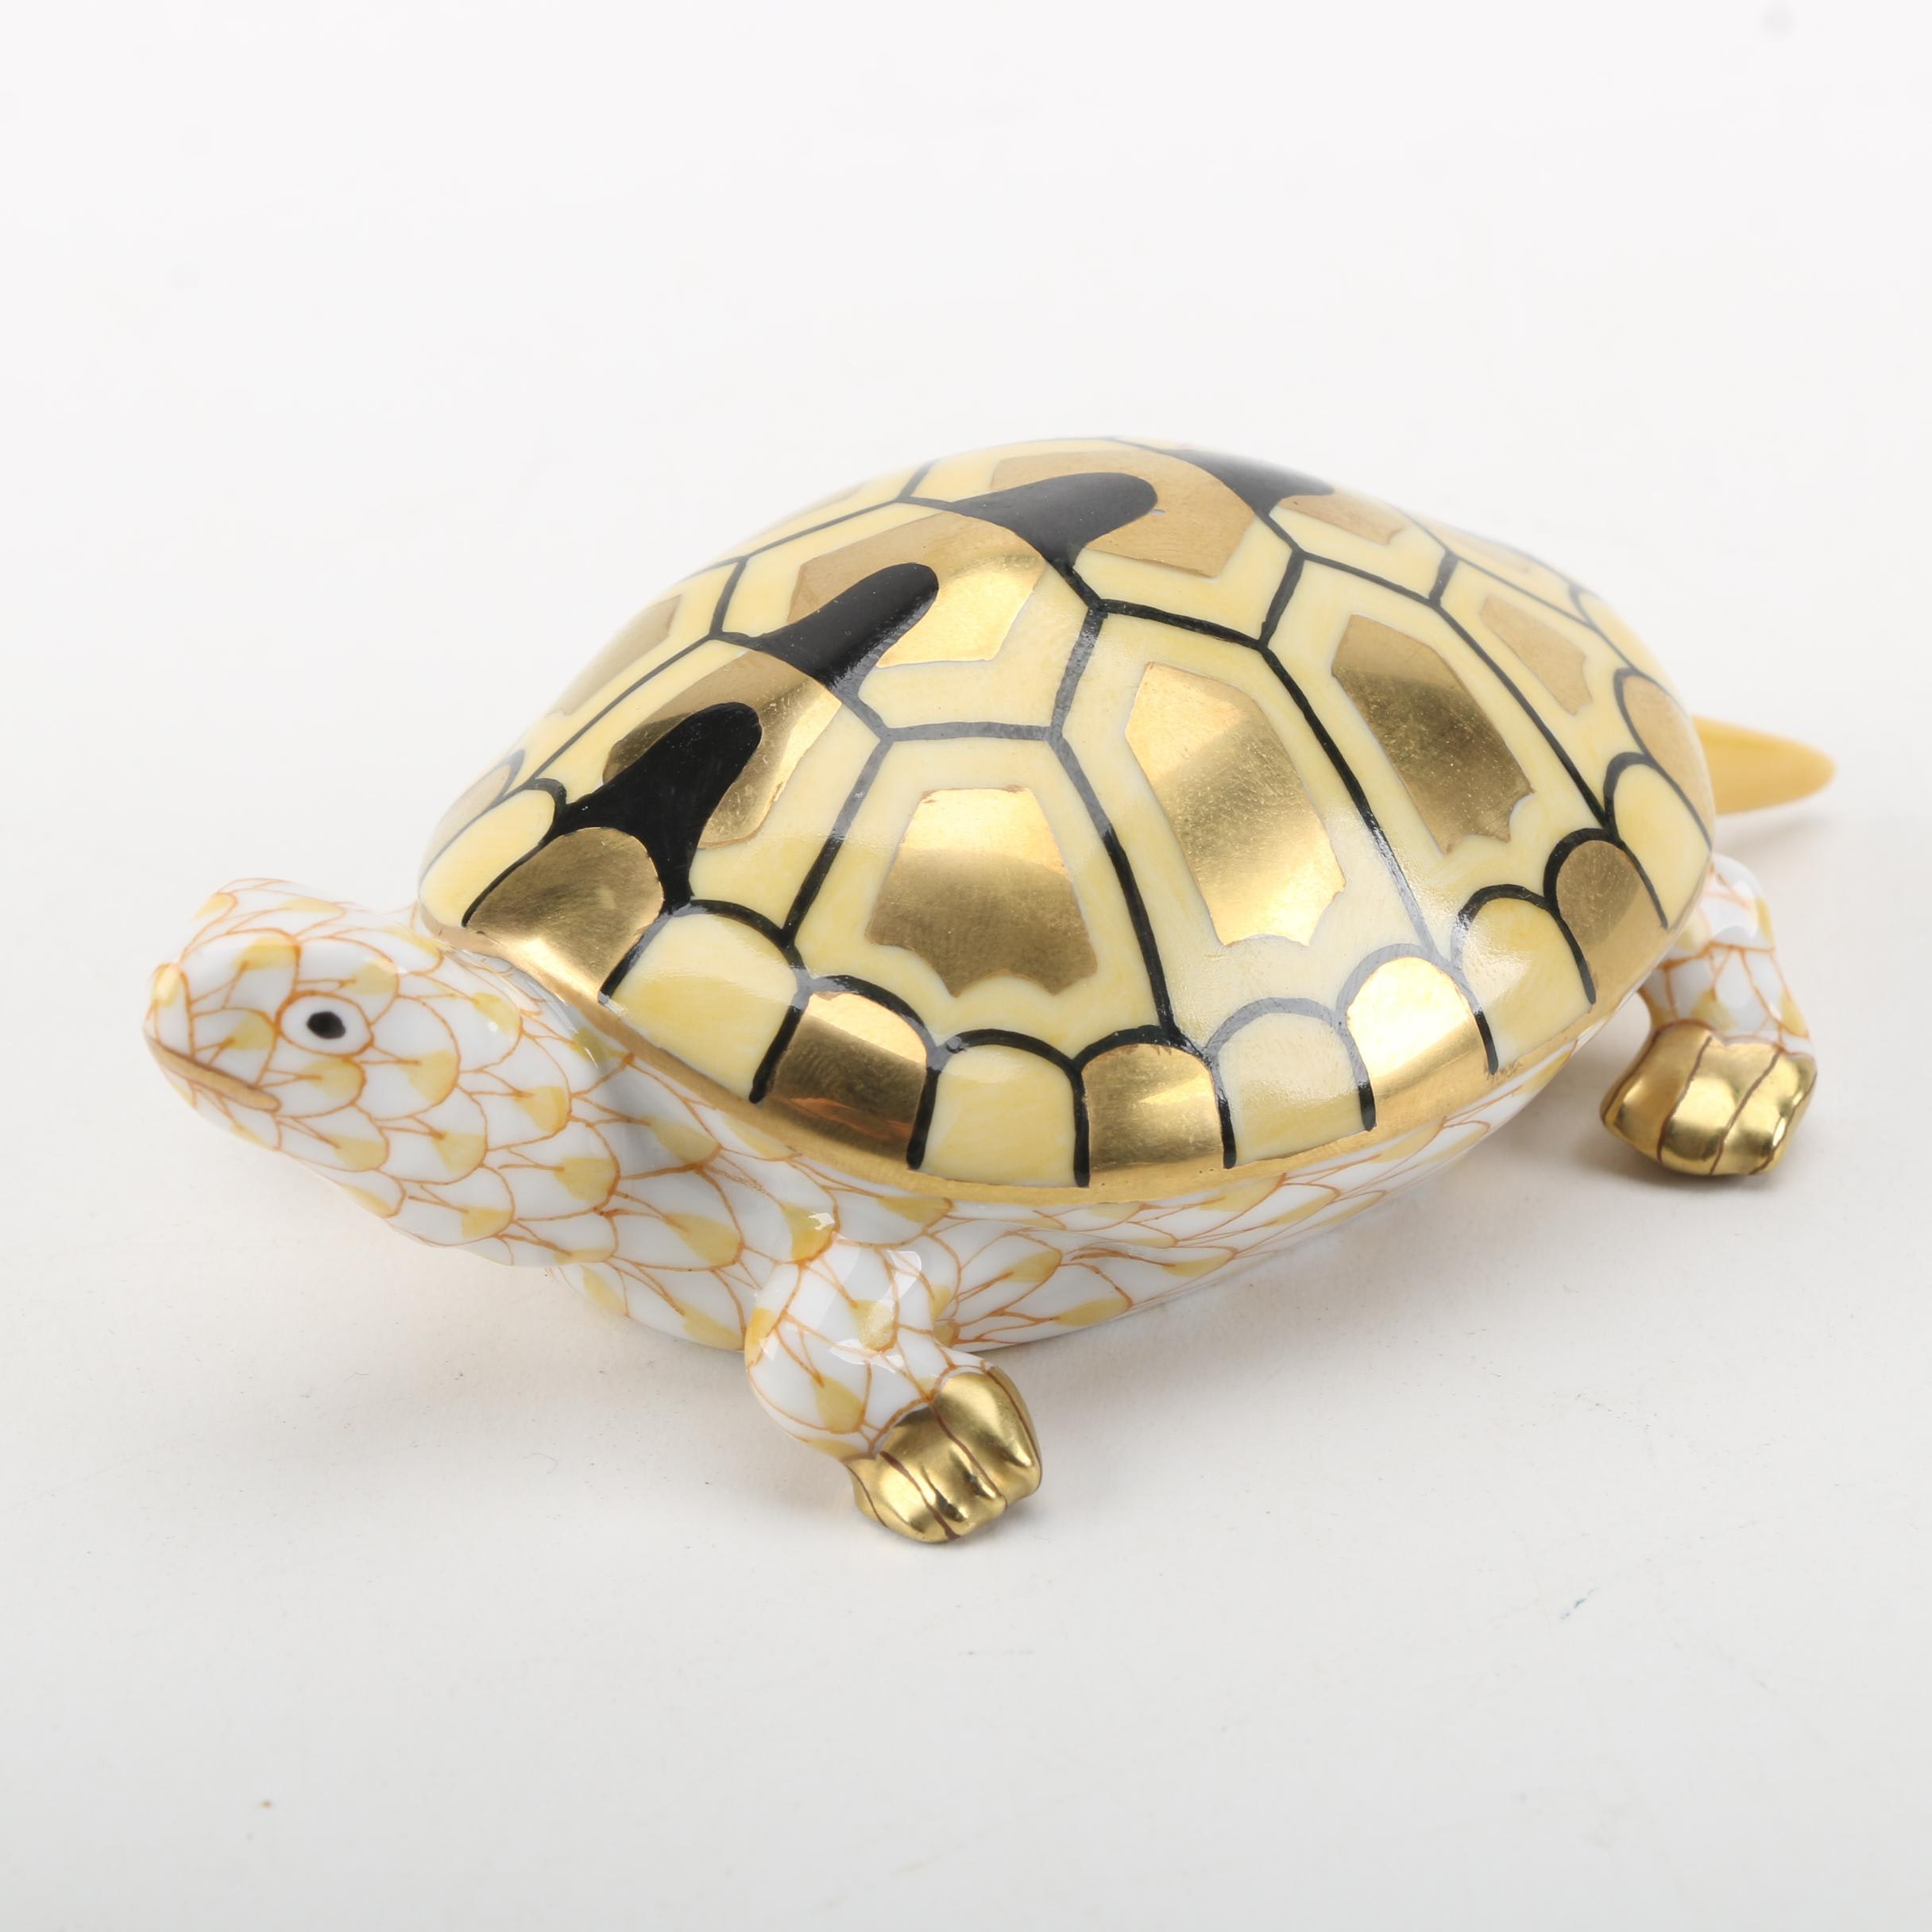 Herend Handmade and Hand-Painted Yellow Porcelain Turtle Figurine with 24K Gold